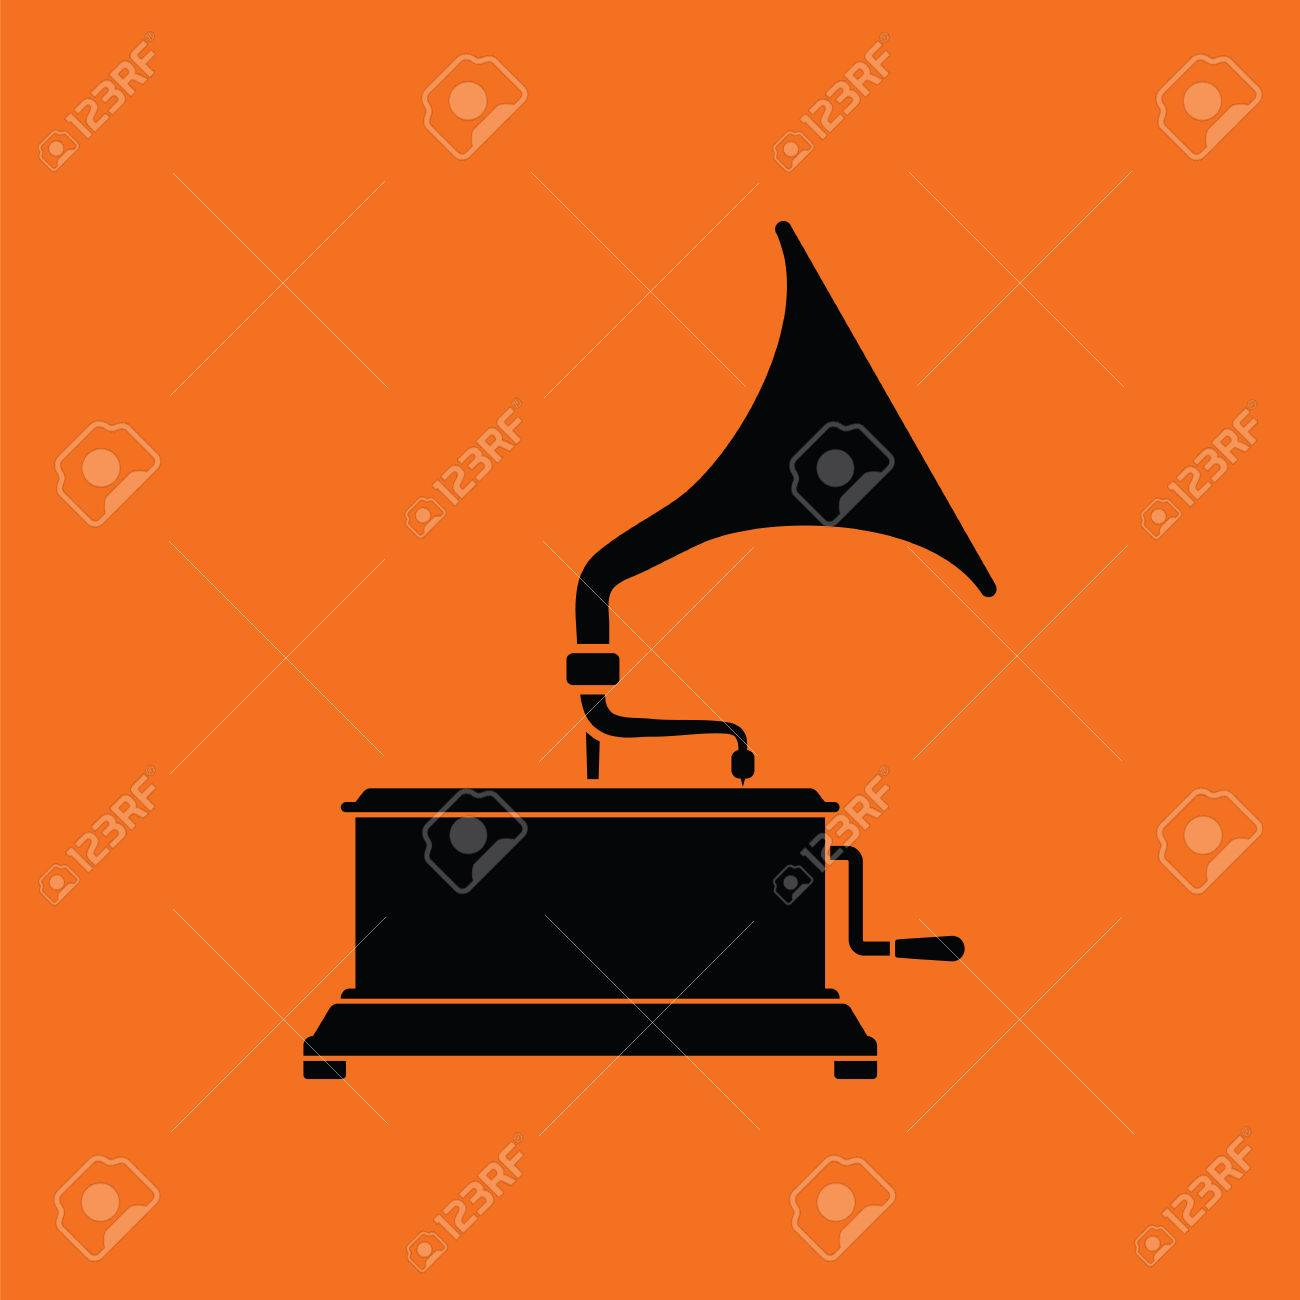 gramophone icon orange background with black vector illustration royalty free cliparts vectors and stock illustration image 63884406 gramophone icon orange background with black vector illustration royalty free cliparts vectors and stock illustration image 63884406